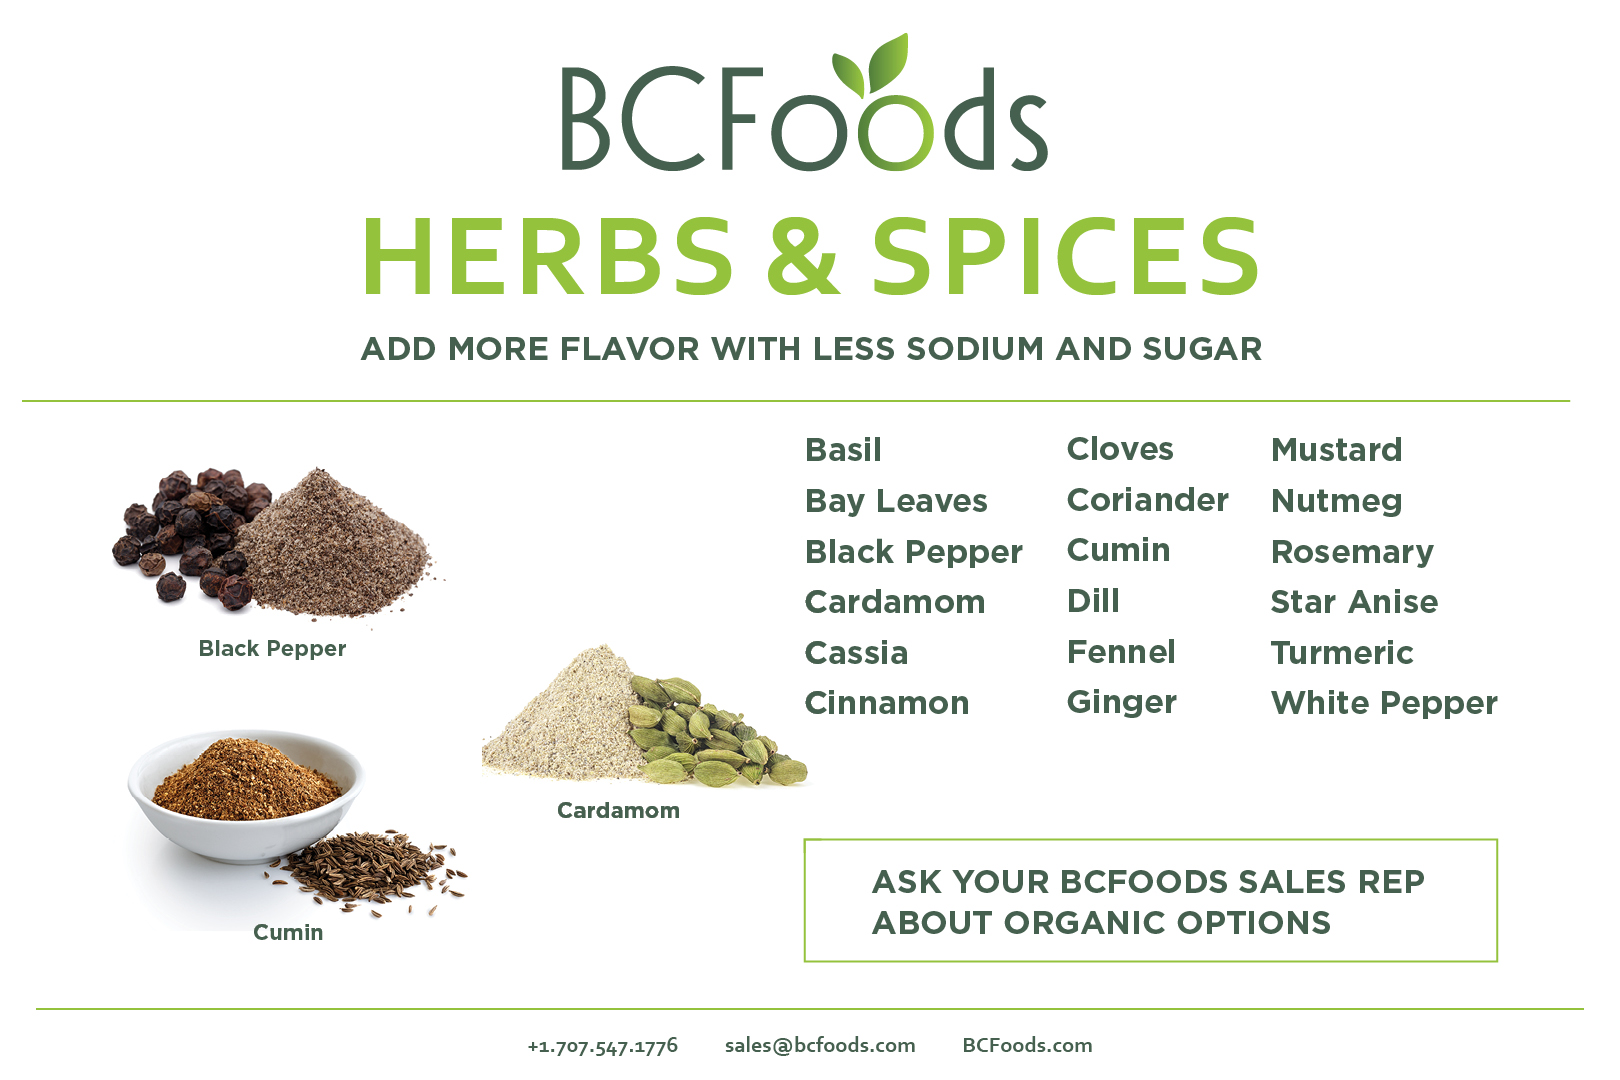 Black Pepper, Herbs, & Spices, BCFoods